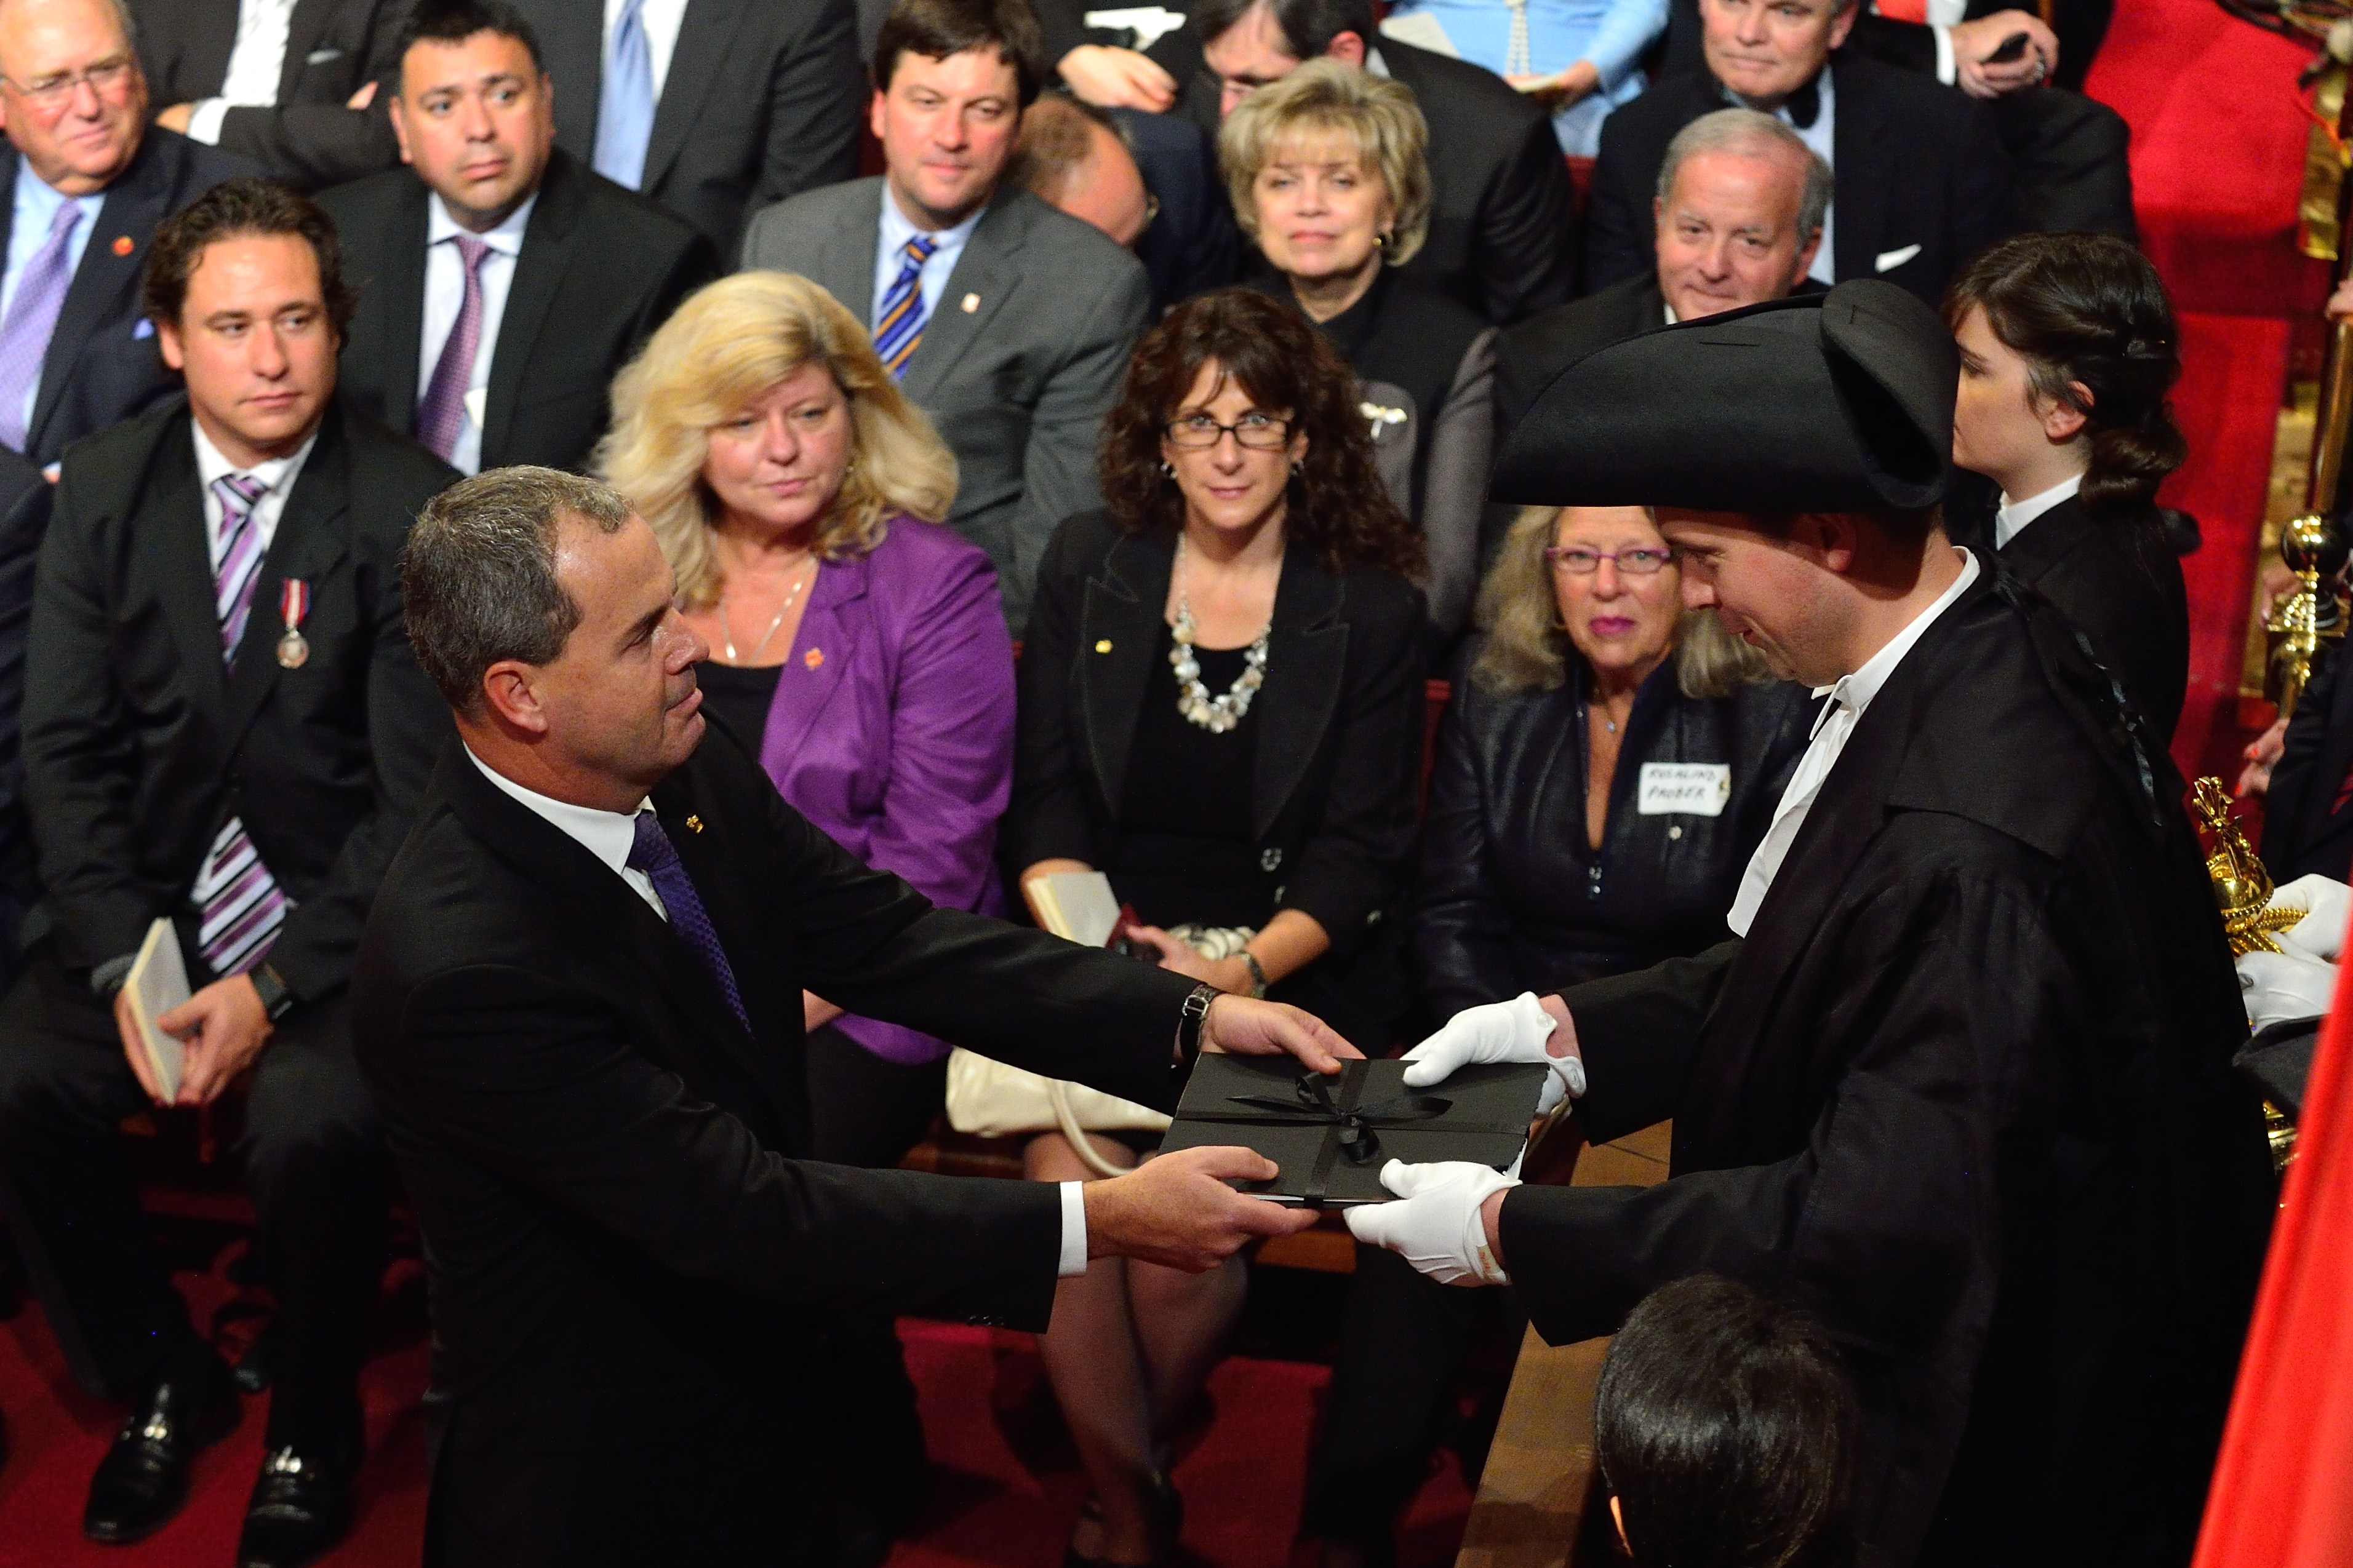 During the ceremony, Secretary to the Governor General Mr. Stephen Wallace (left) presented a copy of the Speech to the Speaker of the House of Commons The Honourable Andrew Scheer (right).